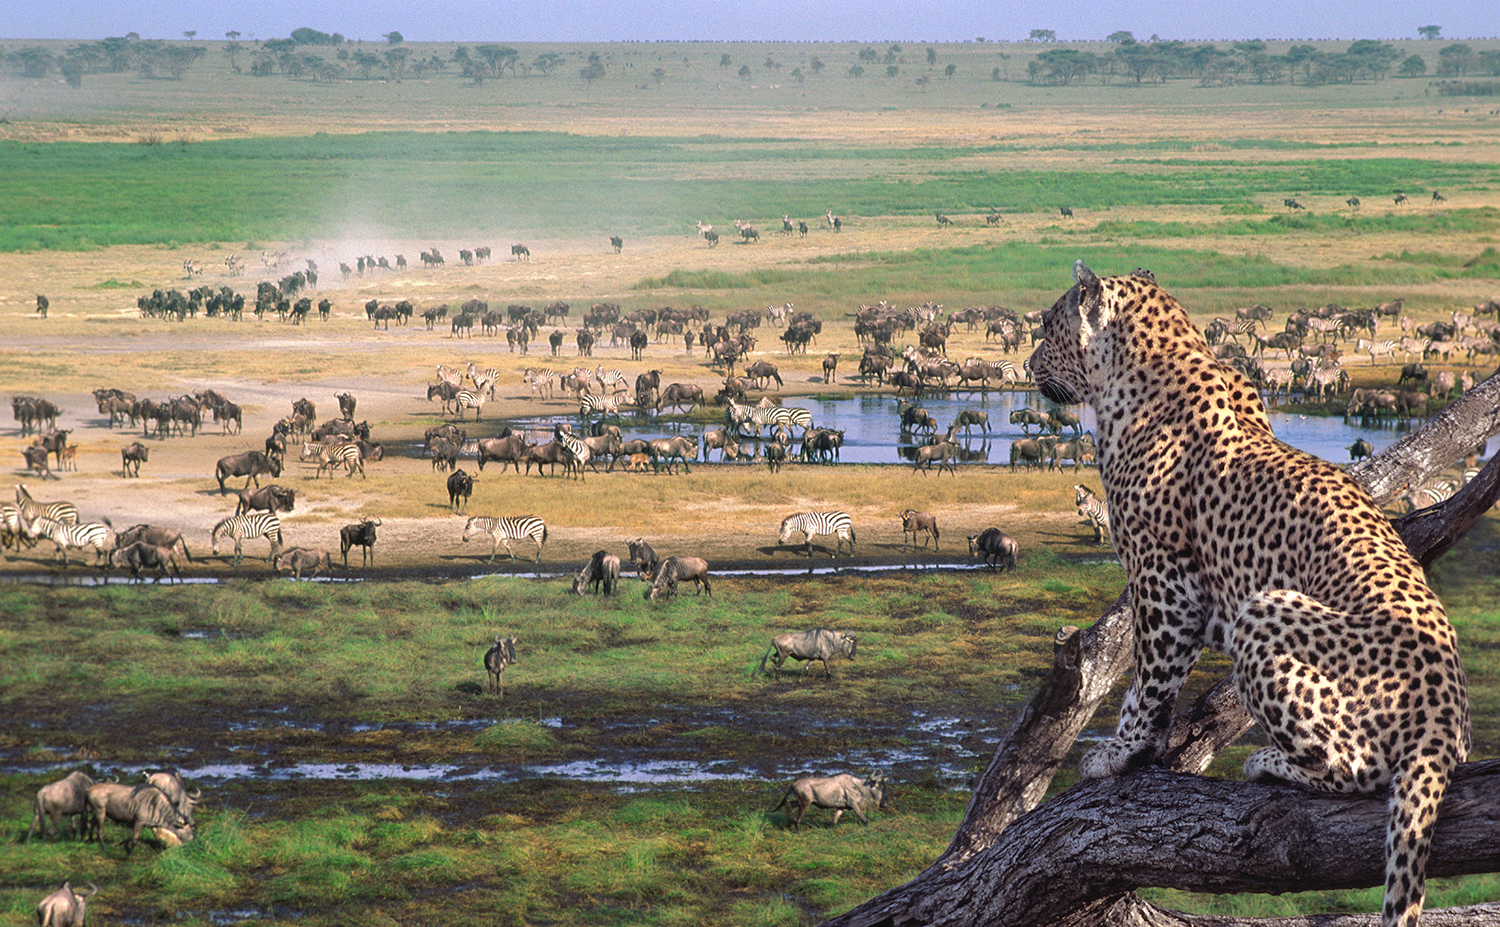 Leopard overlooks the African plains of the Serengeti in Tanzania. Photo from Wilderness Travel